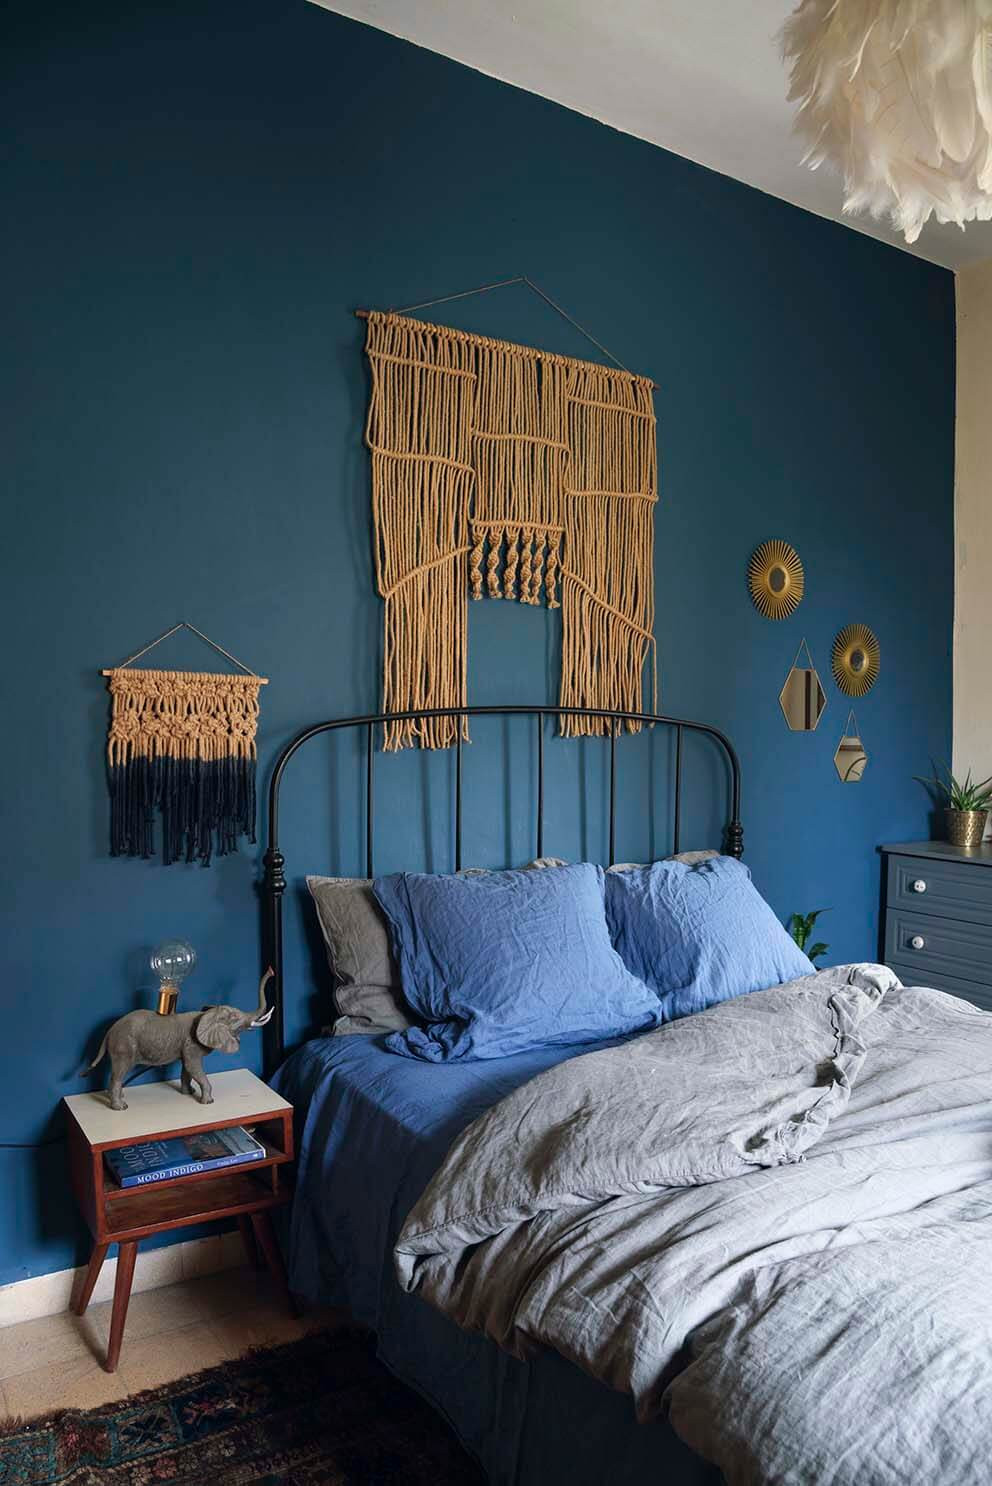 Bedroom With Blue Walls  This Is How To Decorate With Blue Walls